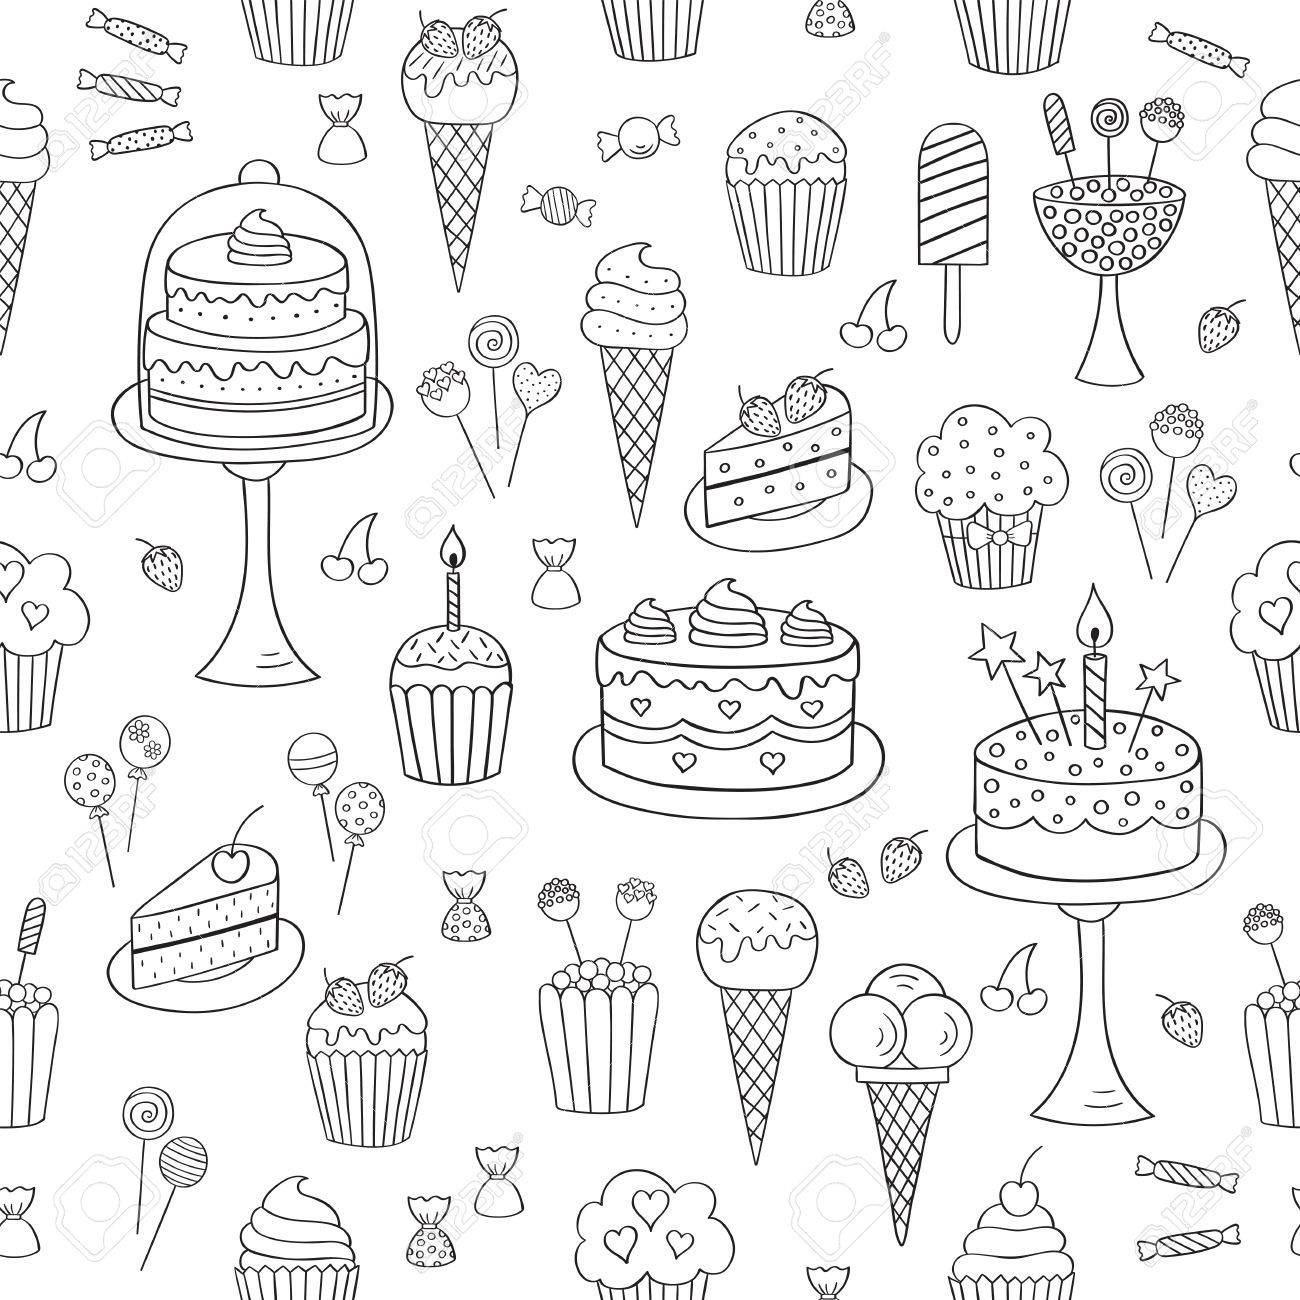 Sweets Hand Drawn Doodle Vector Seamless Background Dessert Illustrations Pastries Birthday Cake Cupcake